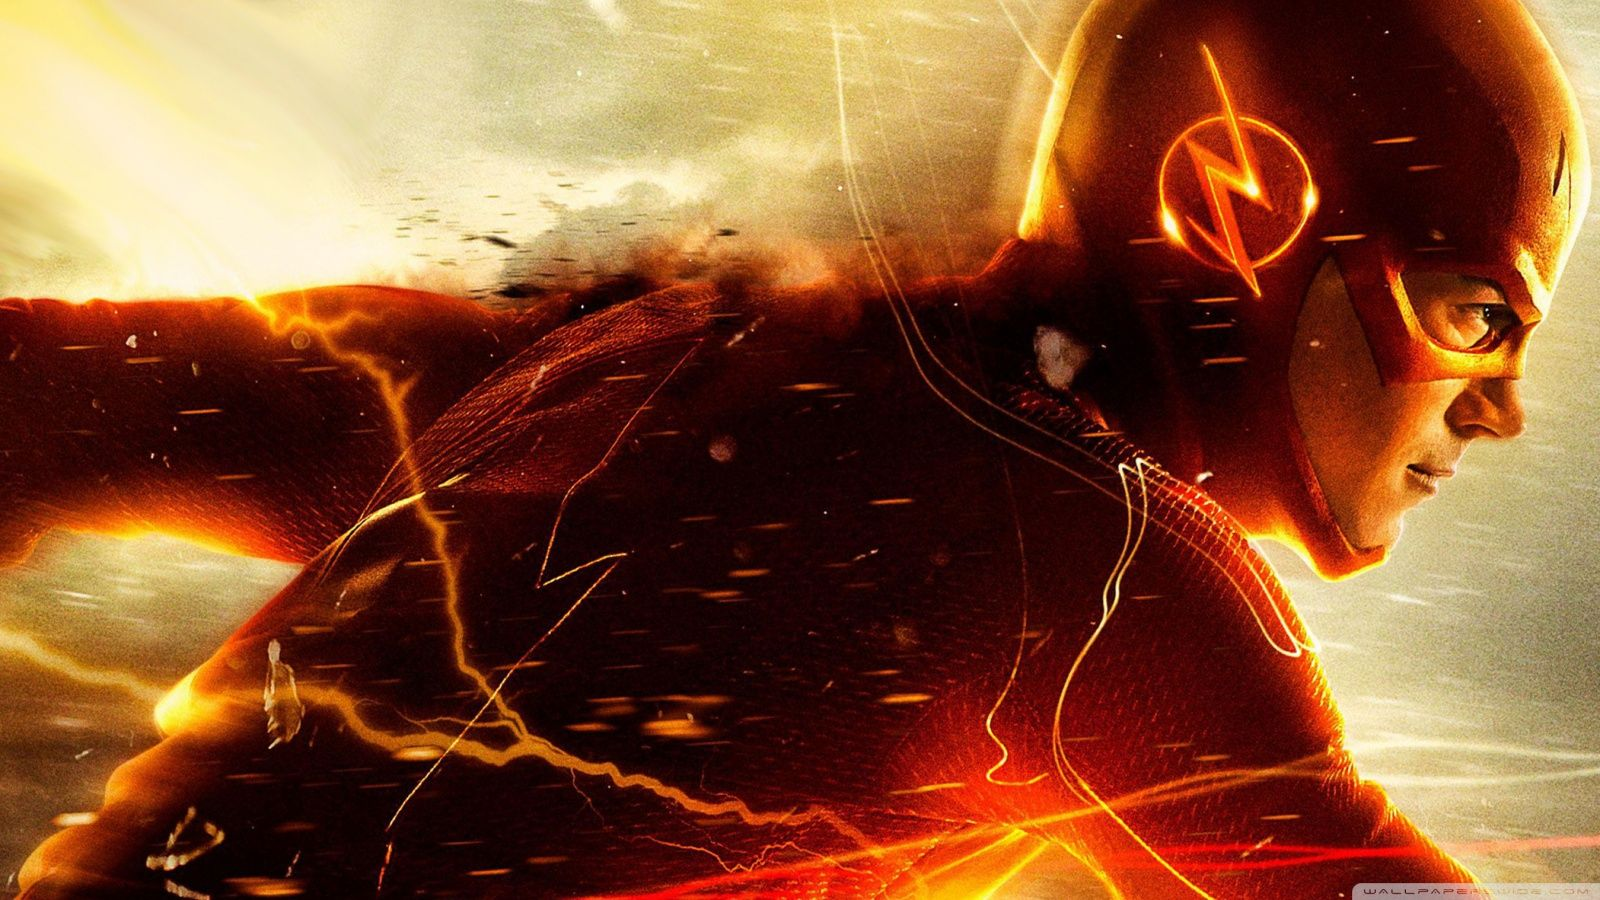 Collection Of Flash Logo Wallpaper On HDWallpapers 1920x1080 The Symbol Wallpapers 42